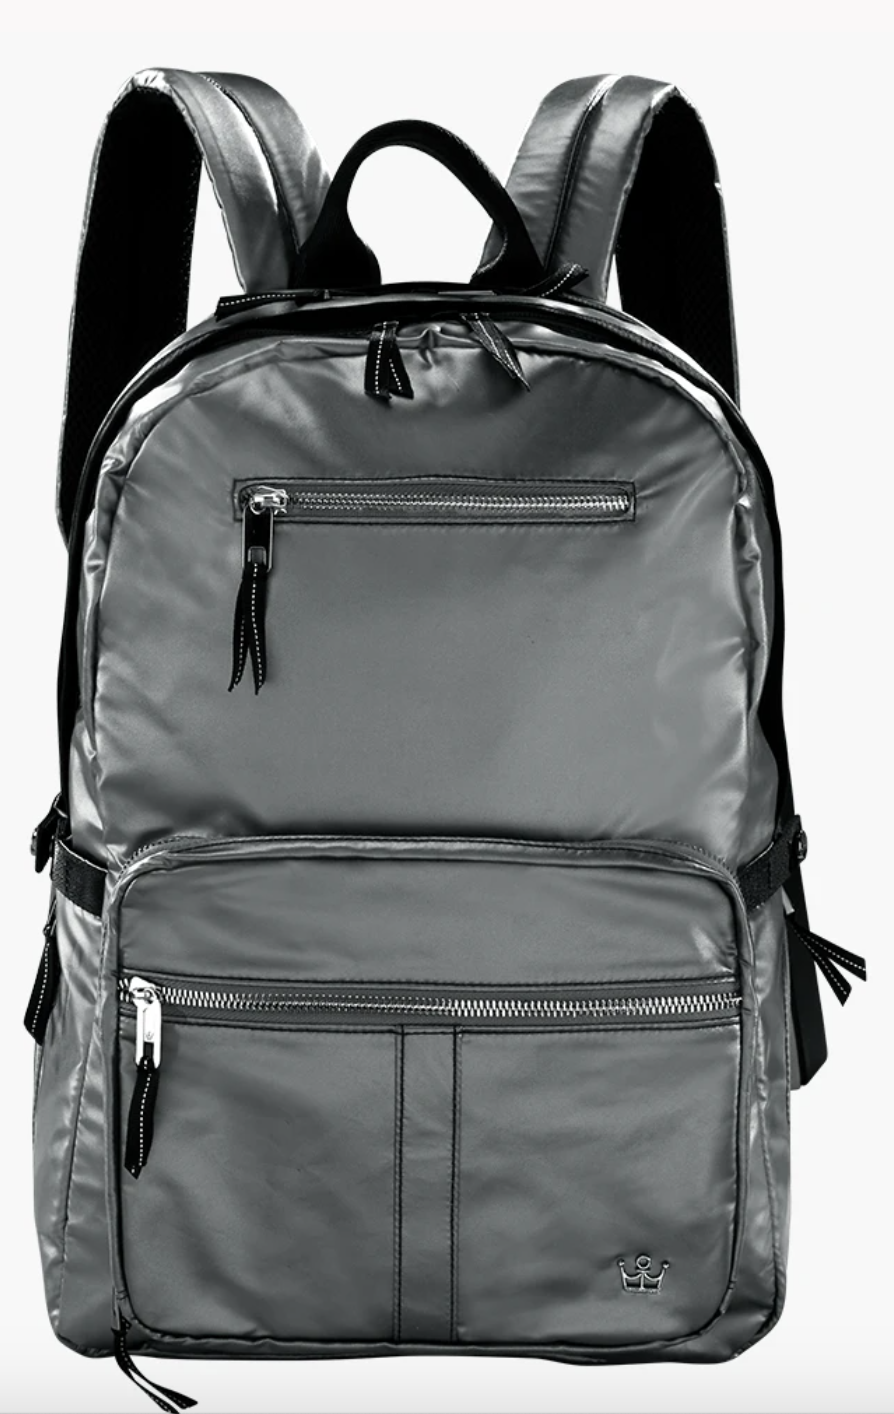 Oliver Thomas: Big Boss Backpack